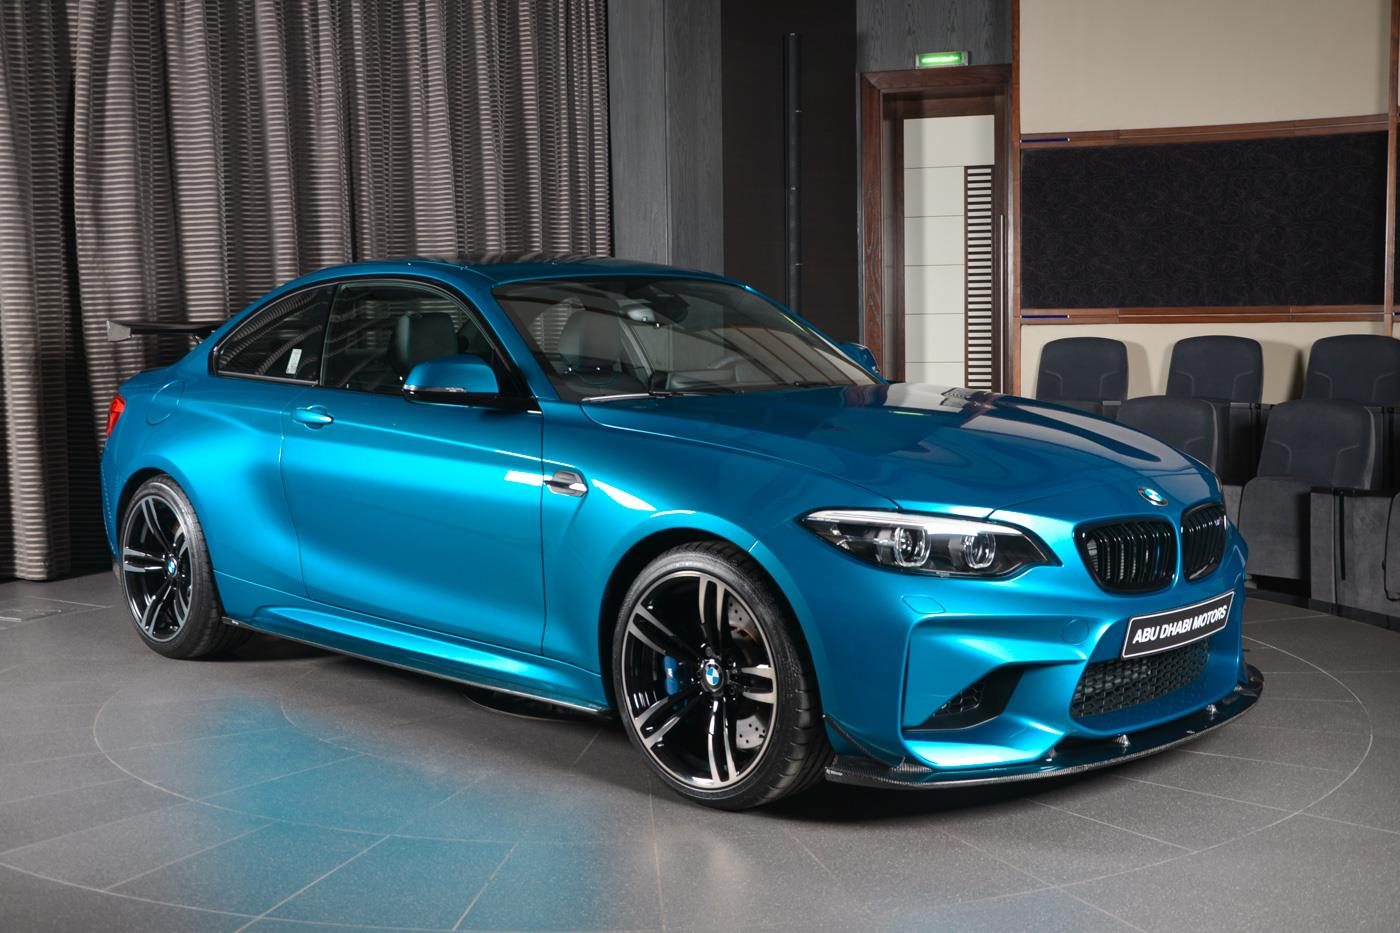 Bmw M2 Looks The Part With Bolder Aero Kit Carscoops